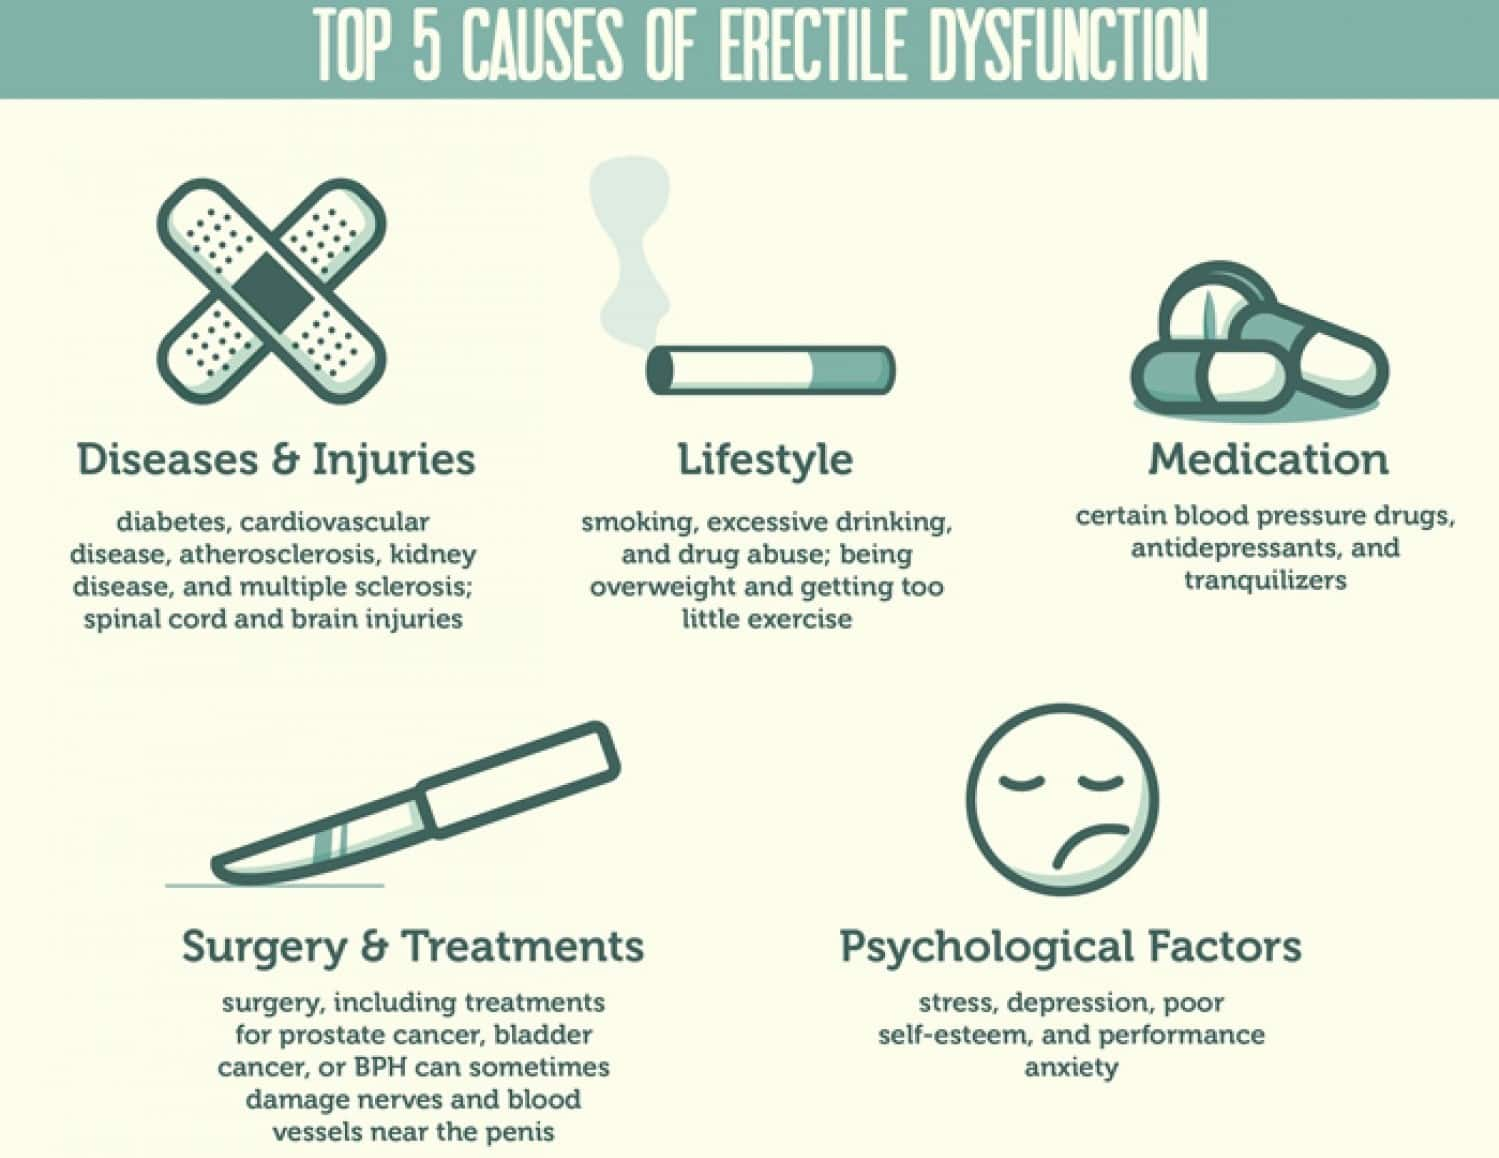 top 5 causes of erectile dysfunction